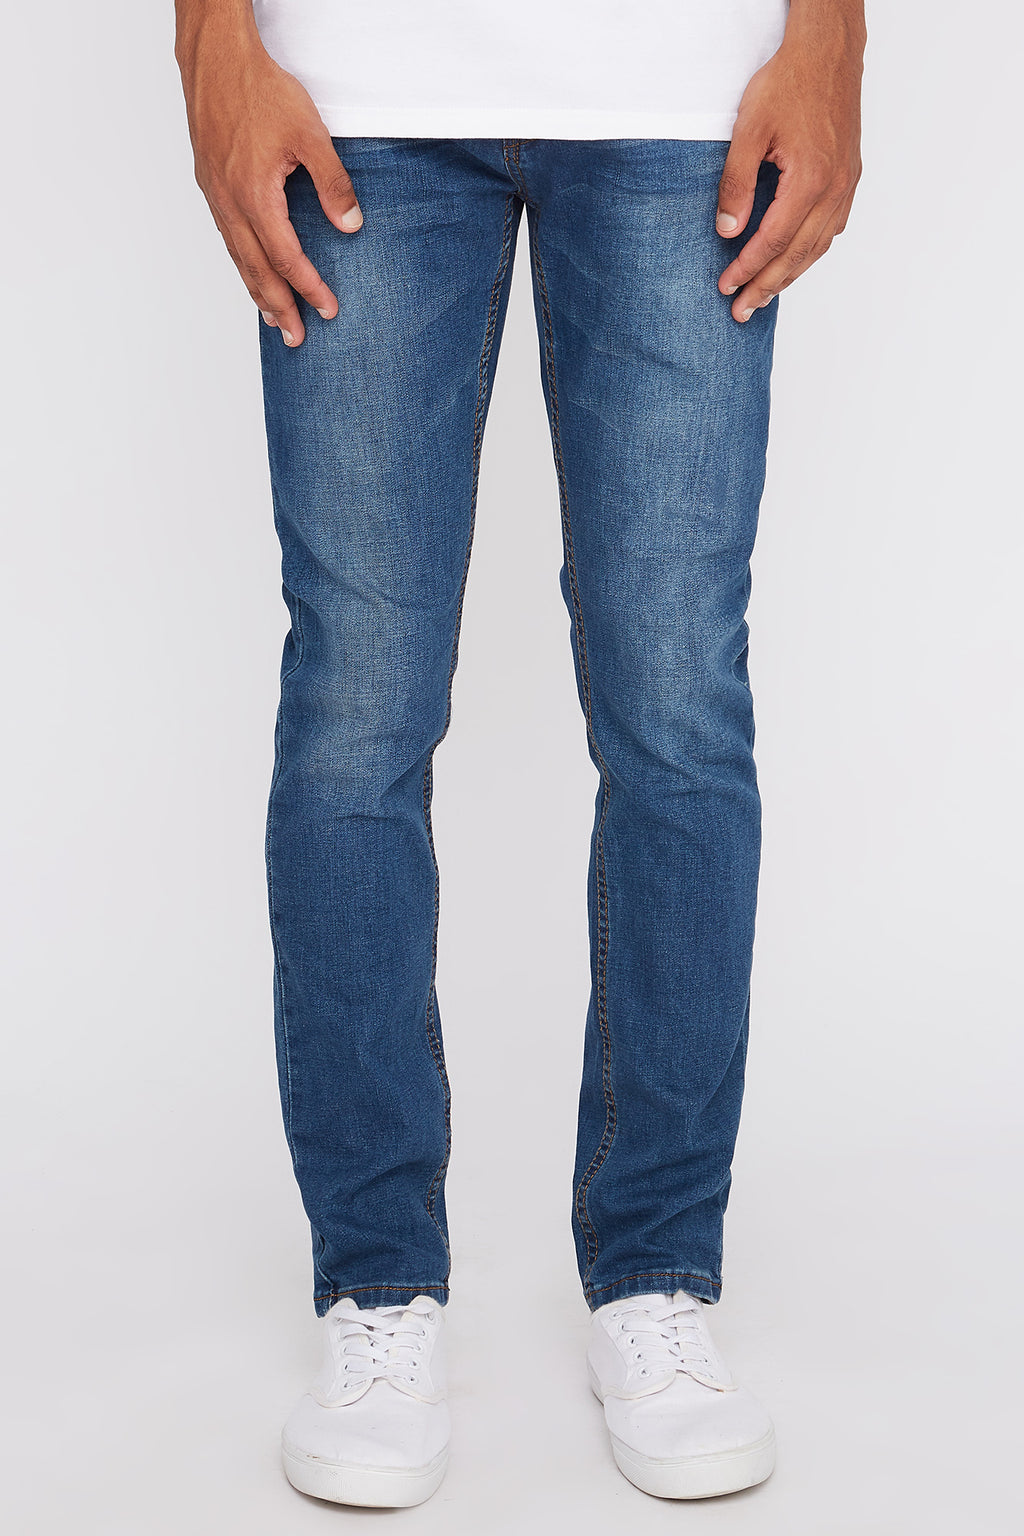 West49 Mens Dark Wash Stretch Skinny Jeans